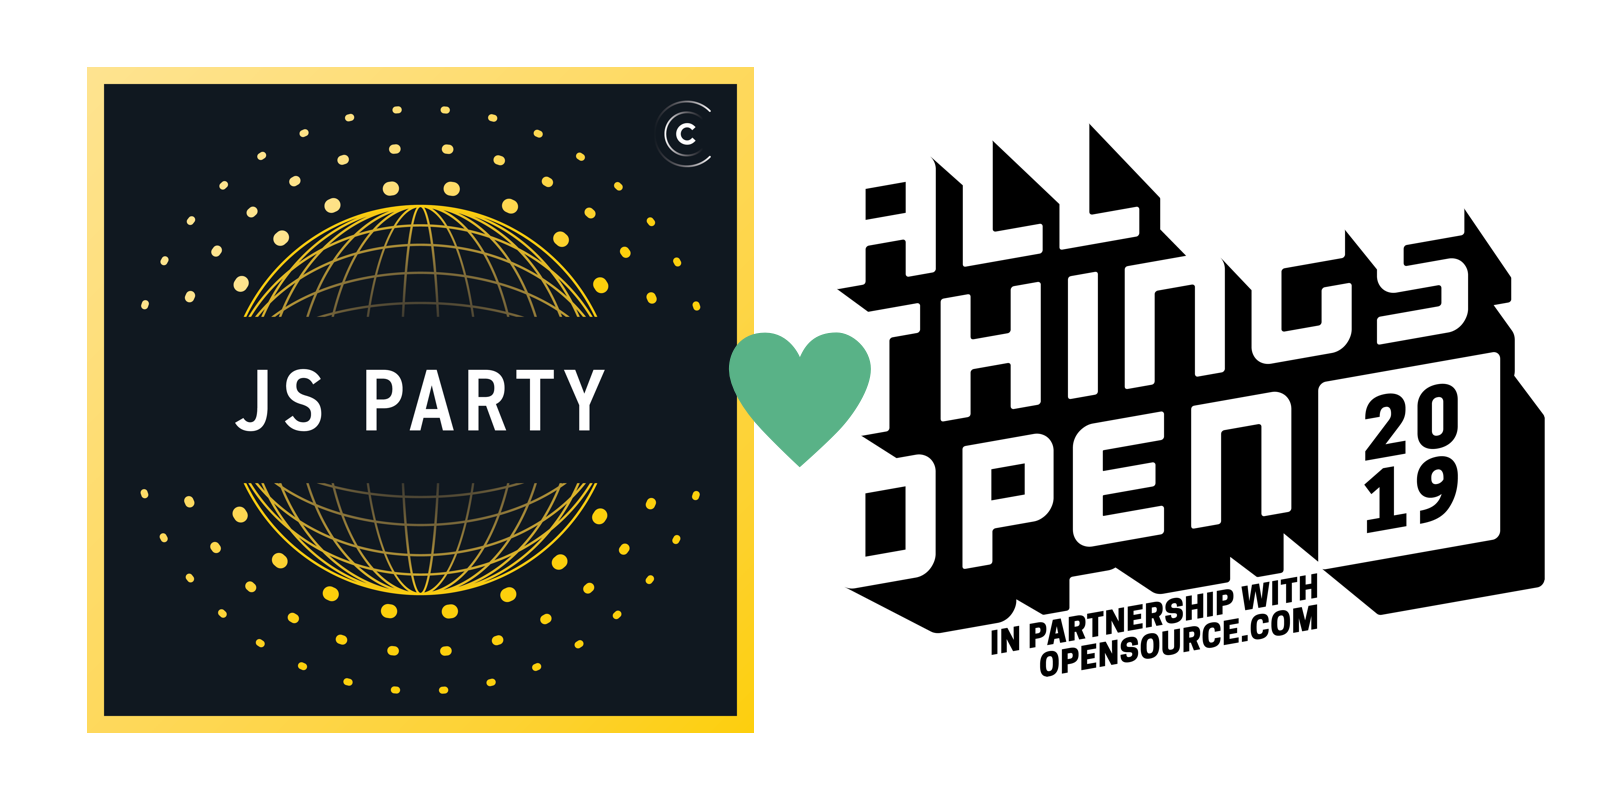 JS Party Live at All Things Open 2019